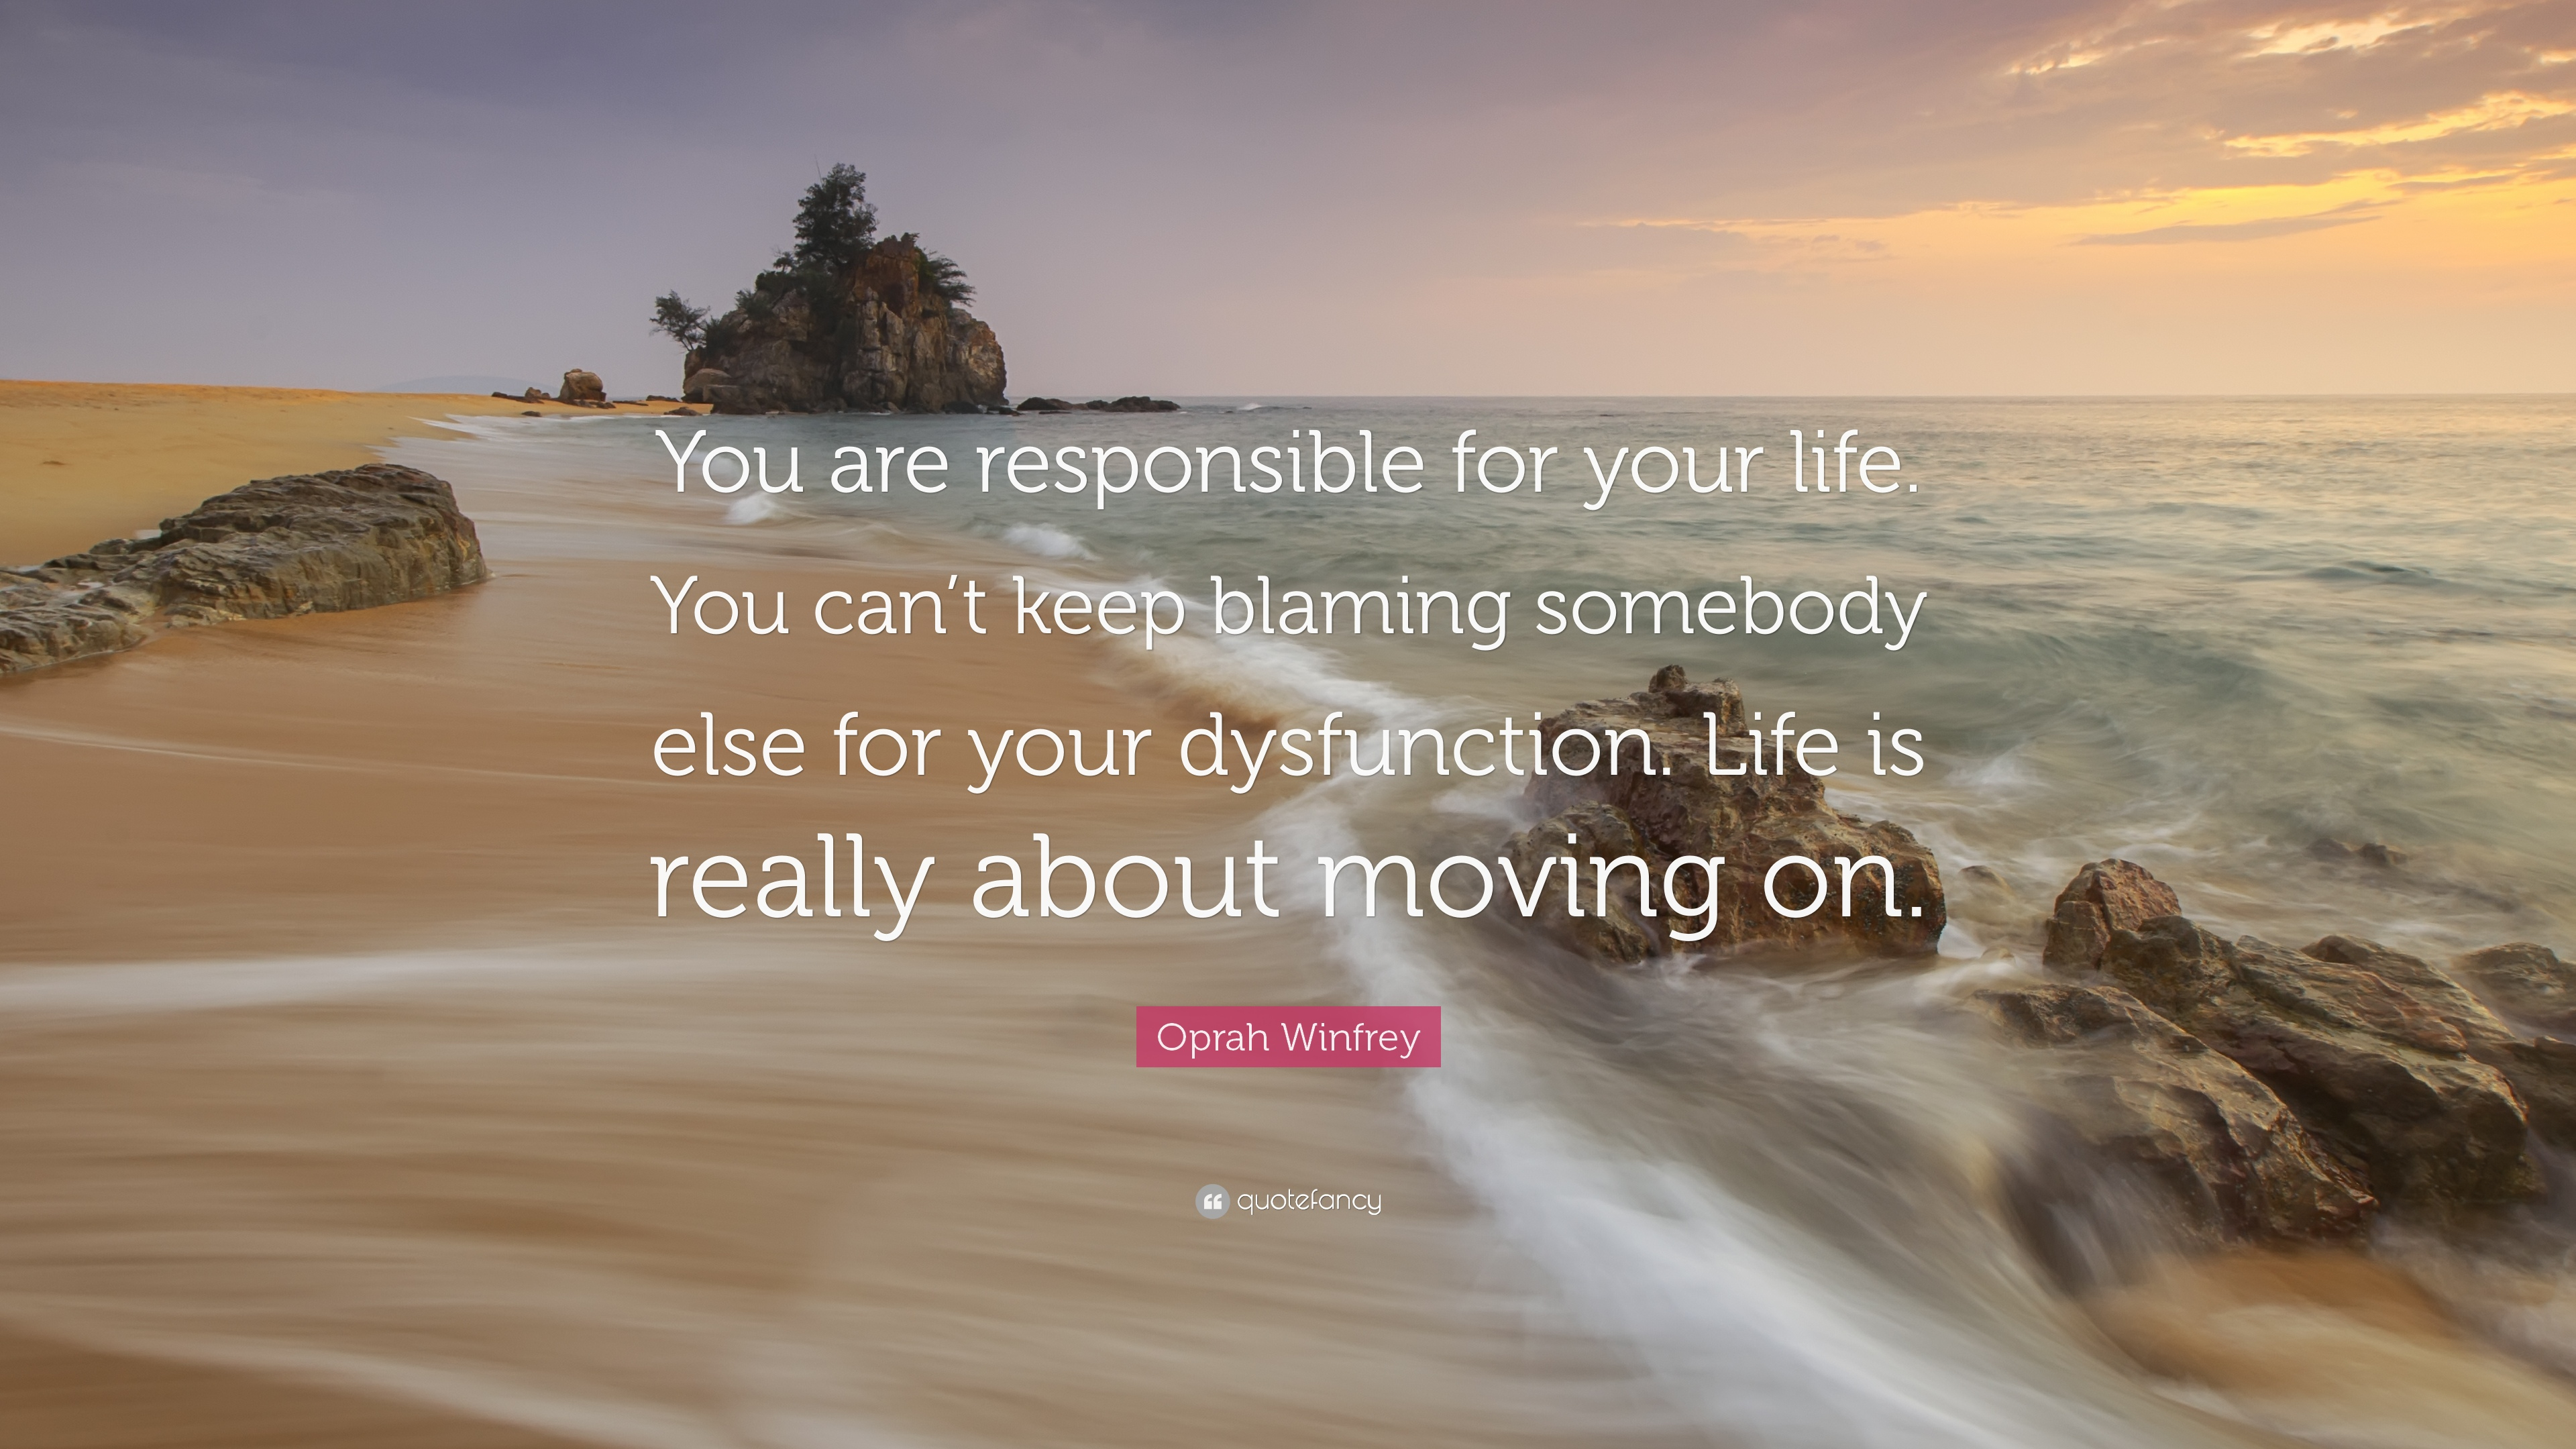 Moving Forward Quotes: U201cYou Are Responsible For Your Life. You Canu0027t